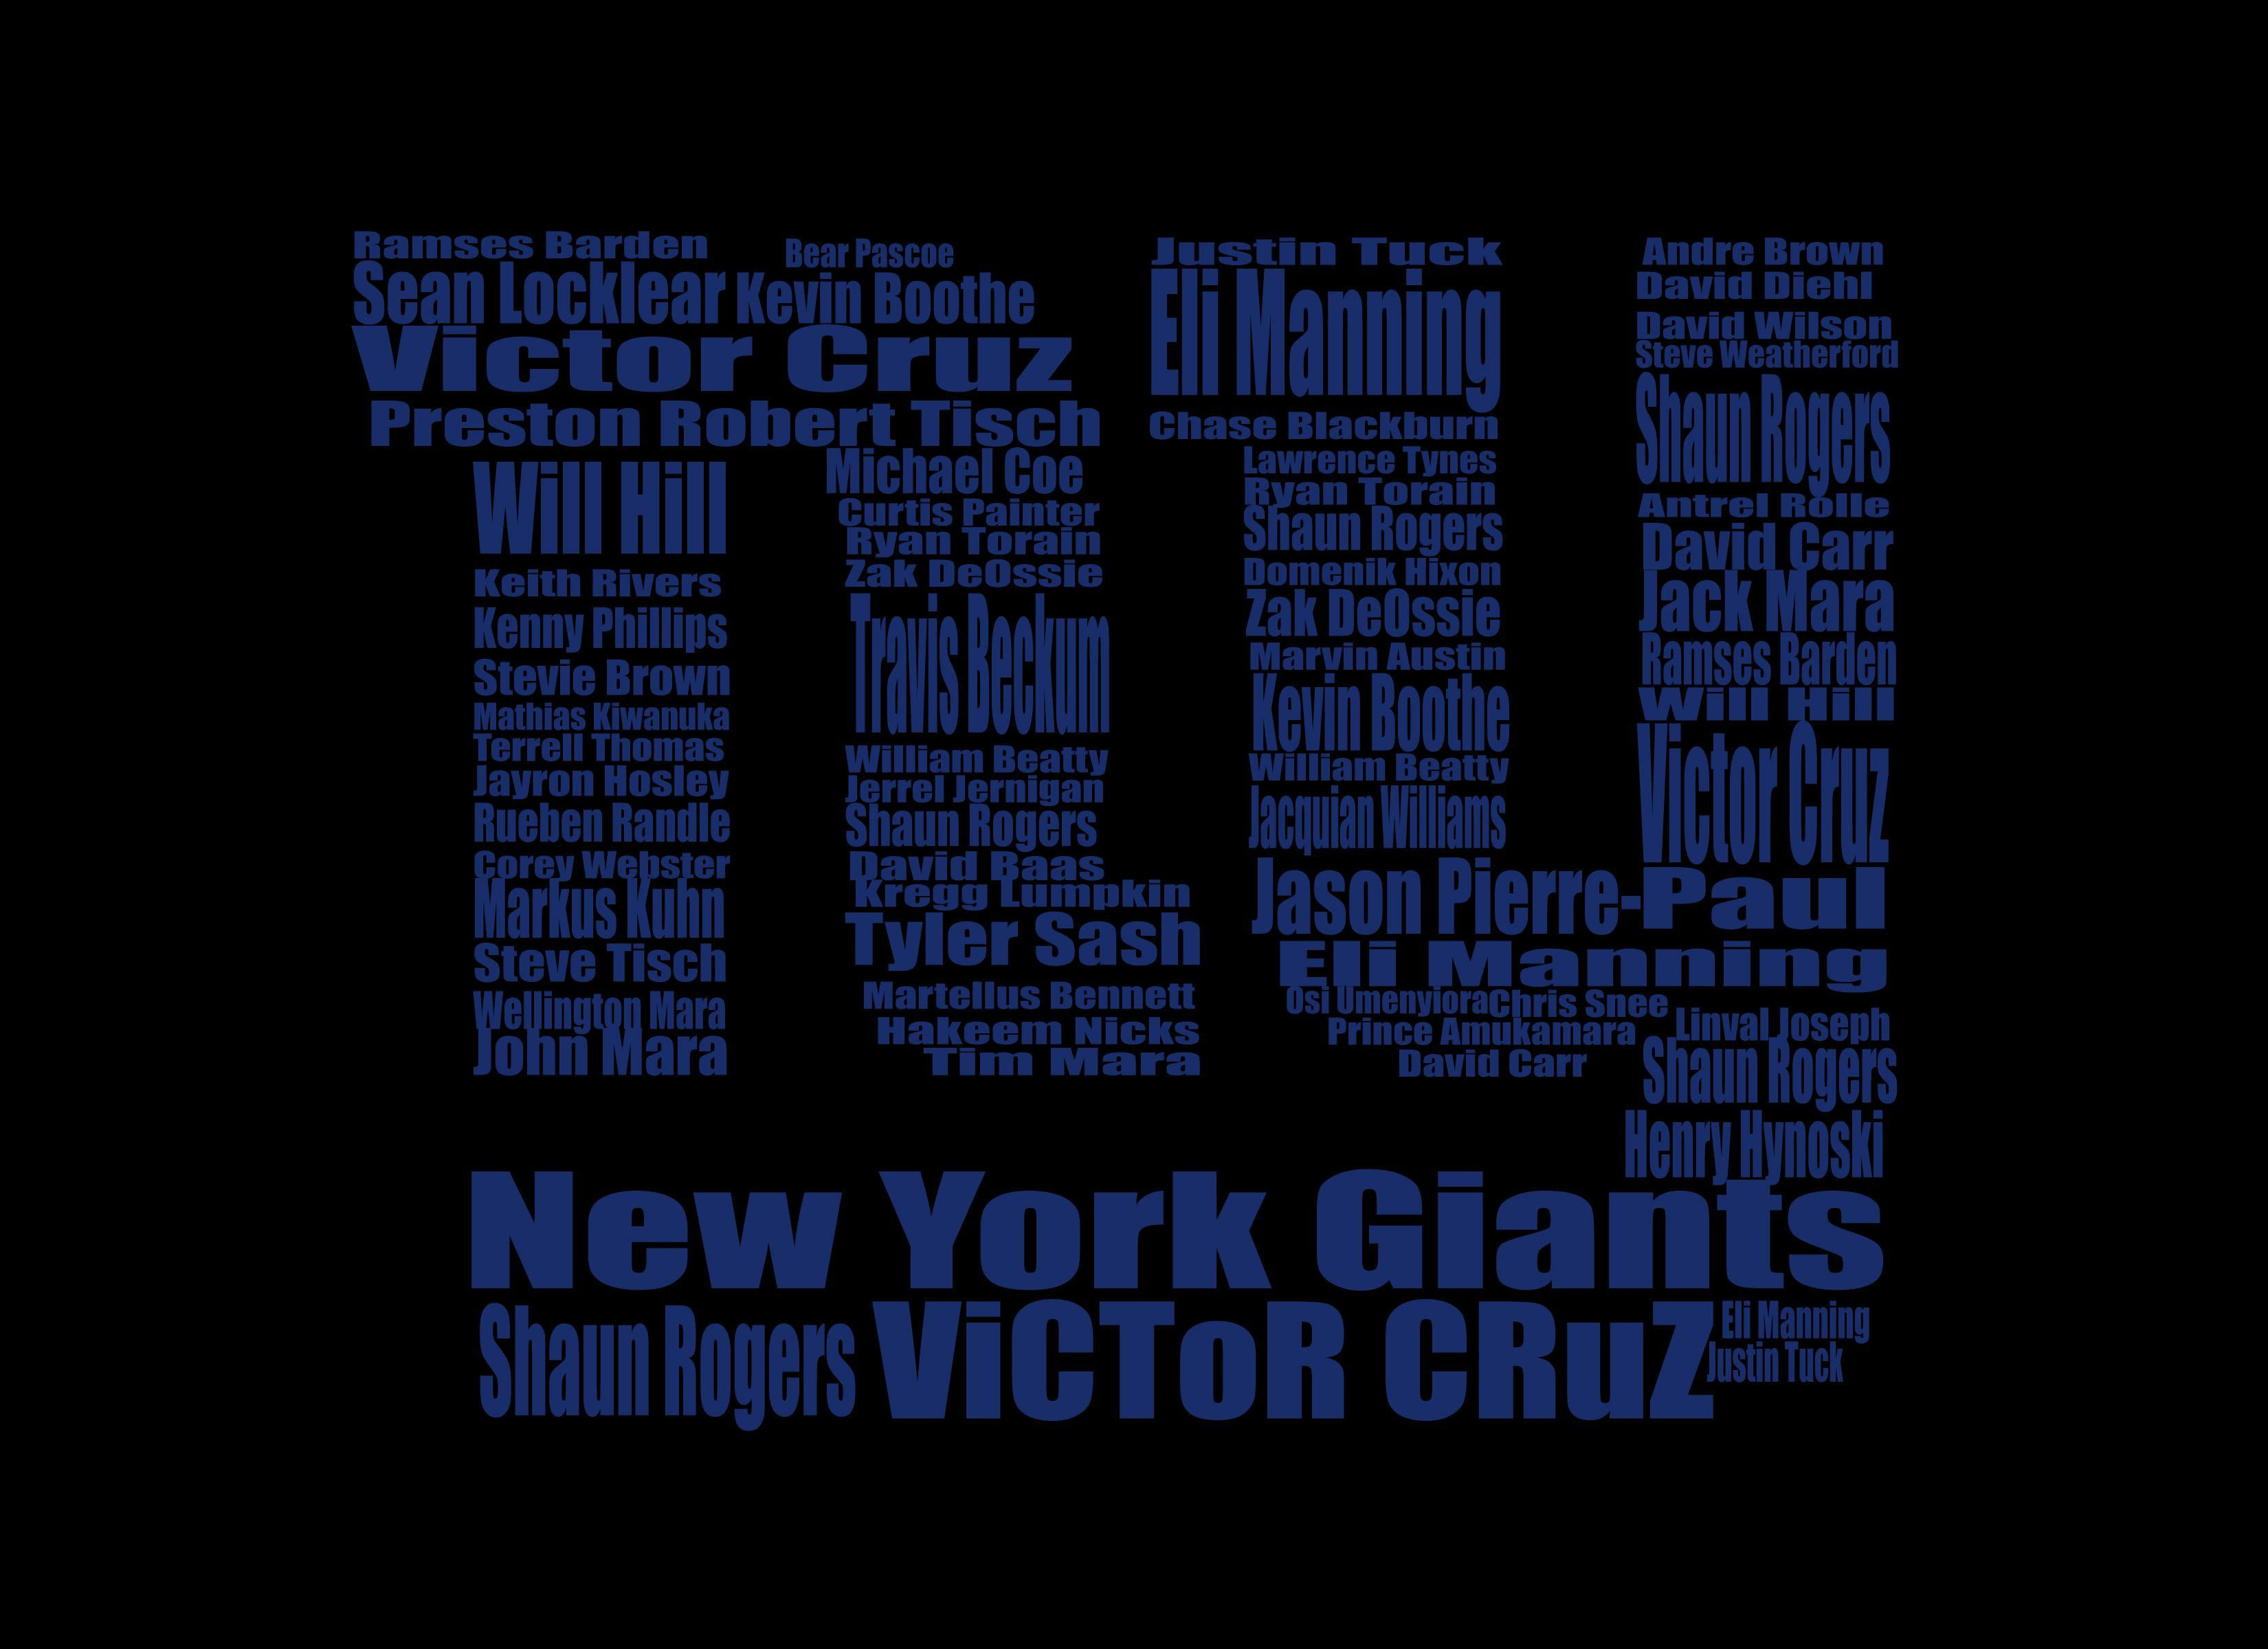 NEW YORK GIANTS nfl football rw wallpapers